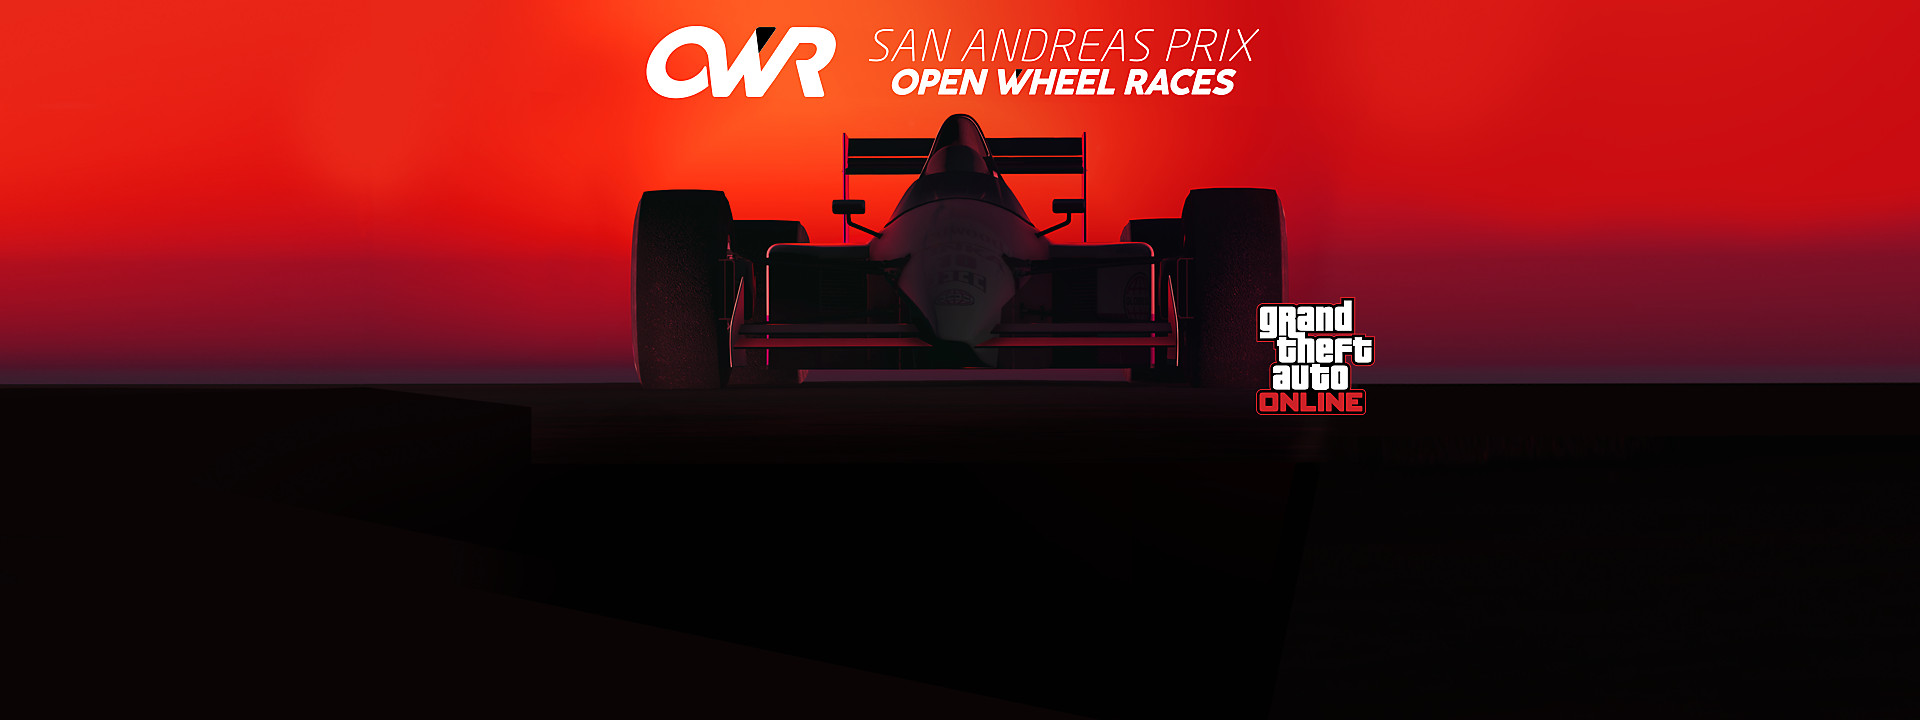 Grand Theft Auto Online - Open Wheel Races Event